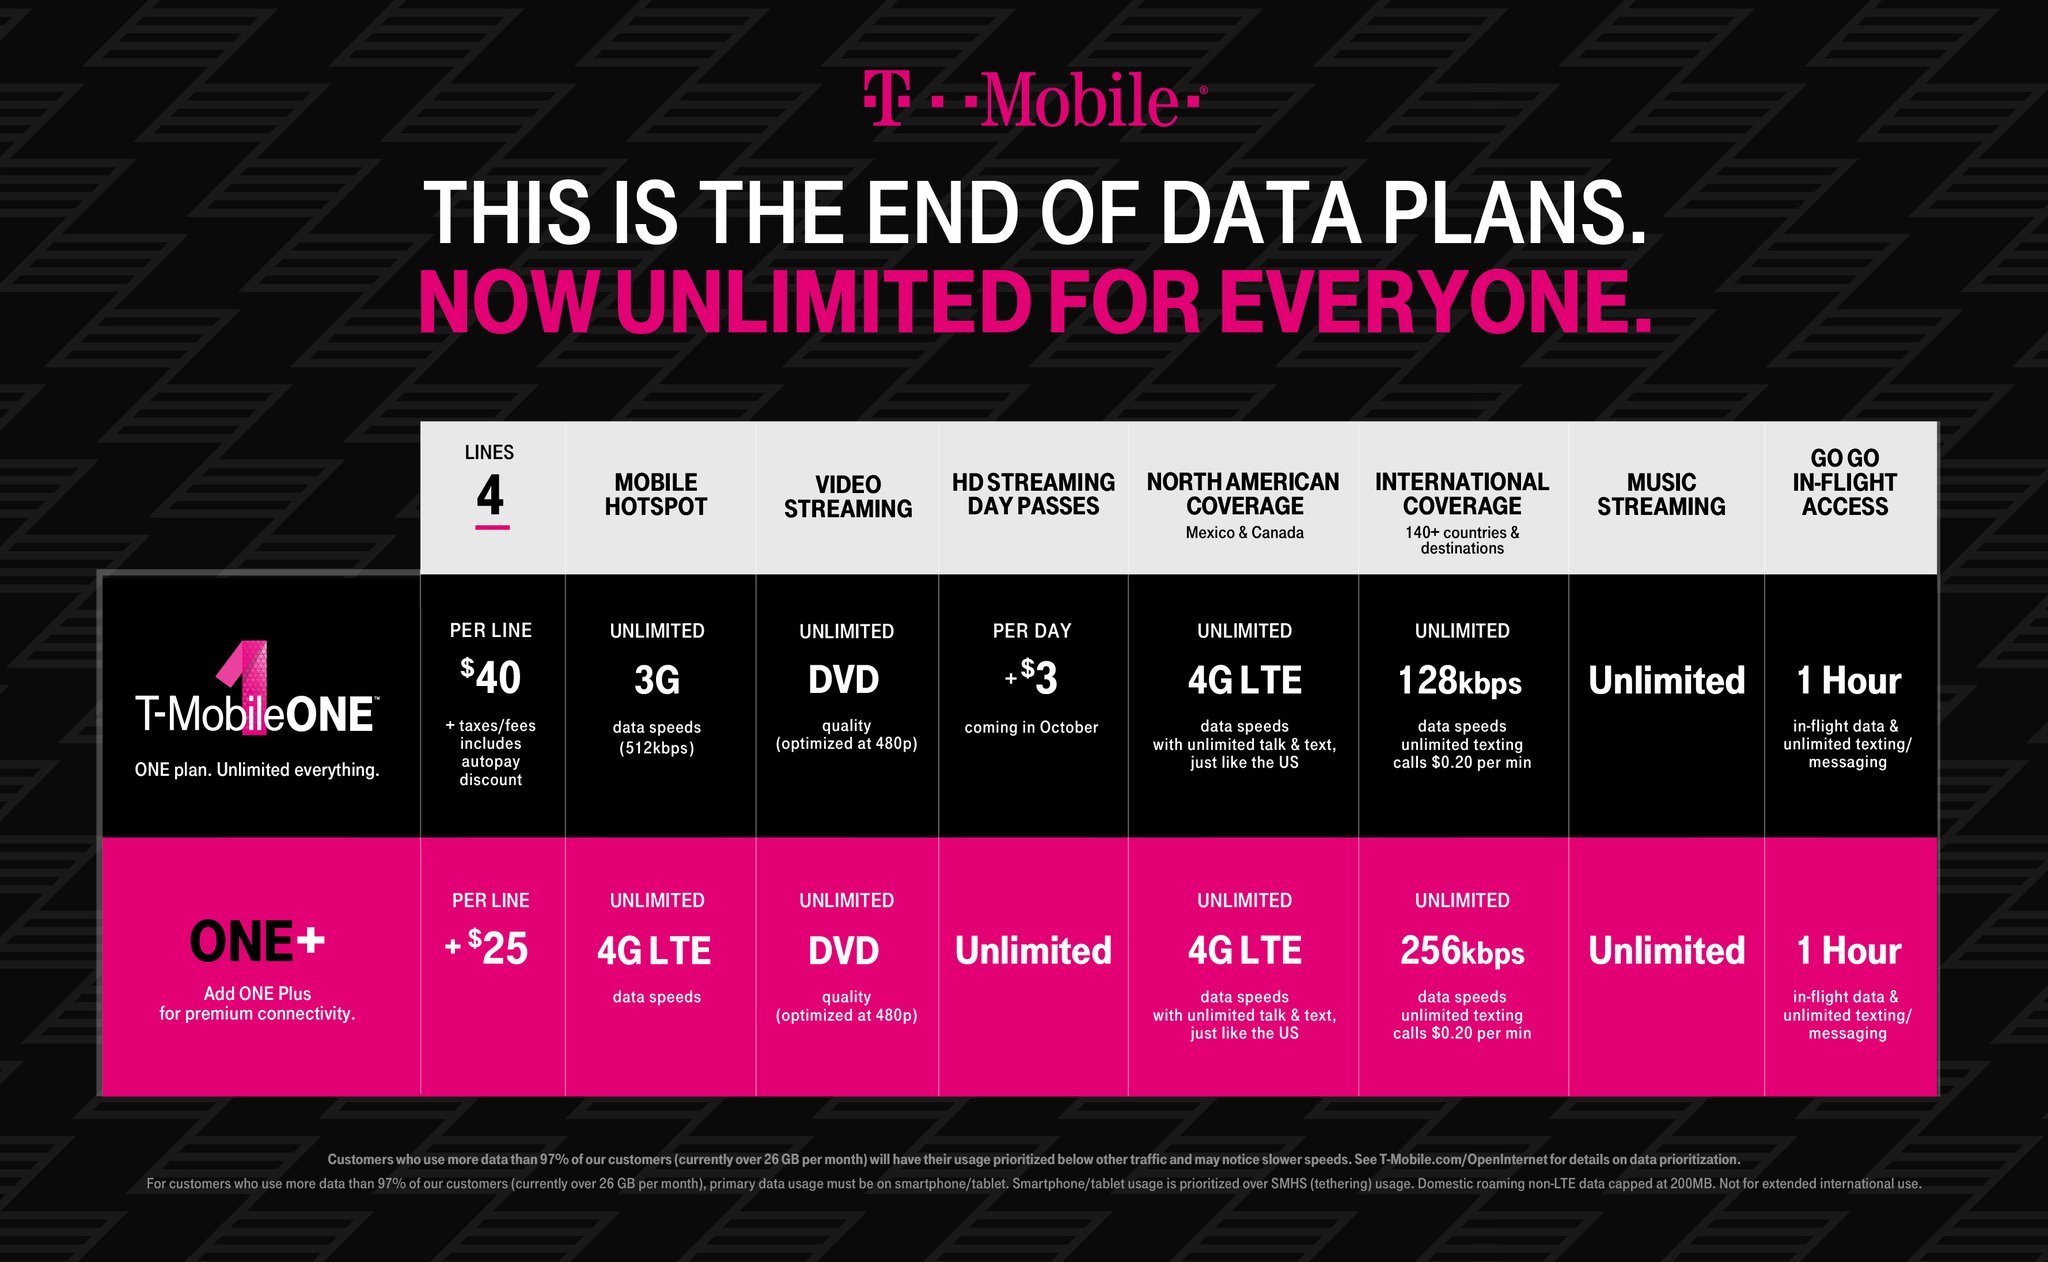 Tmobile Home Internet Plans t-mobile revises t-mobile one, introduces unlimited tethering one+